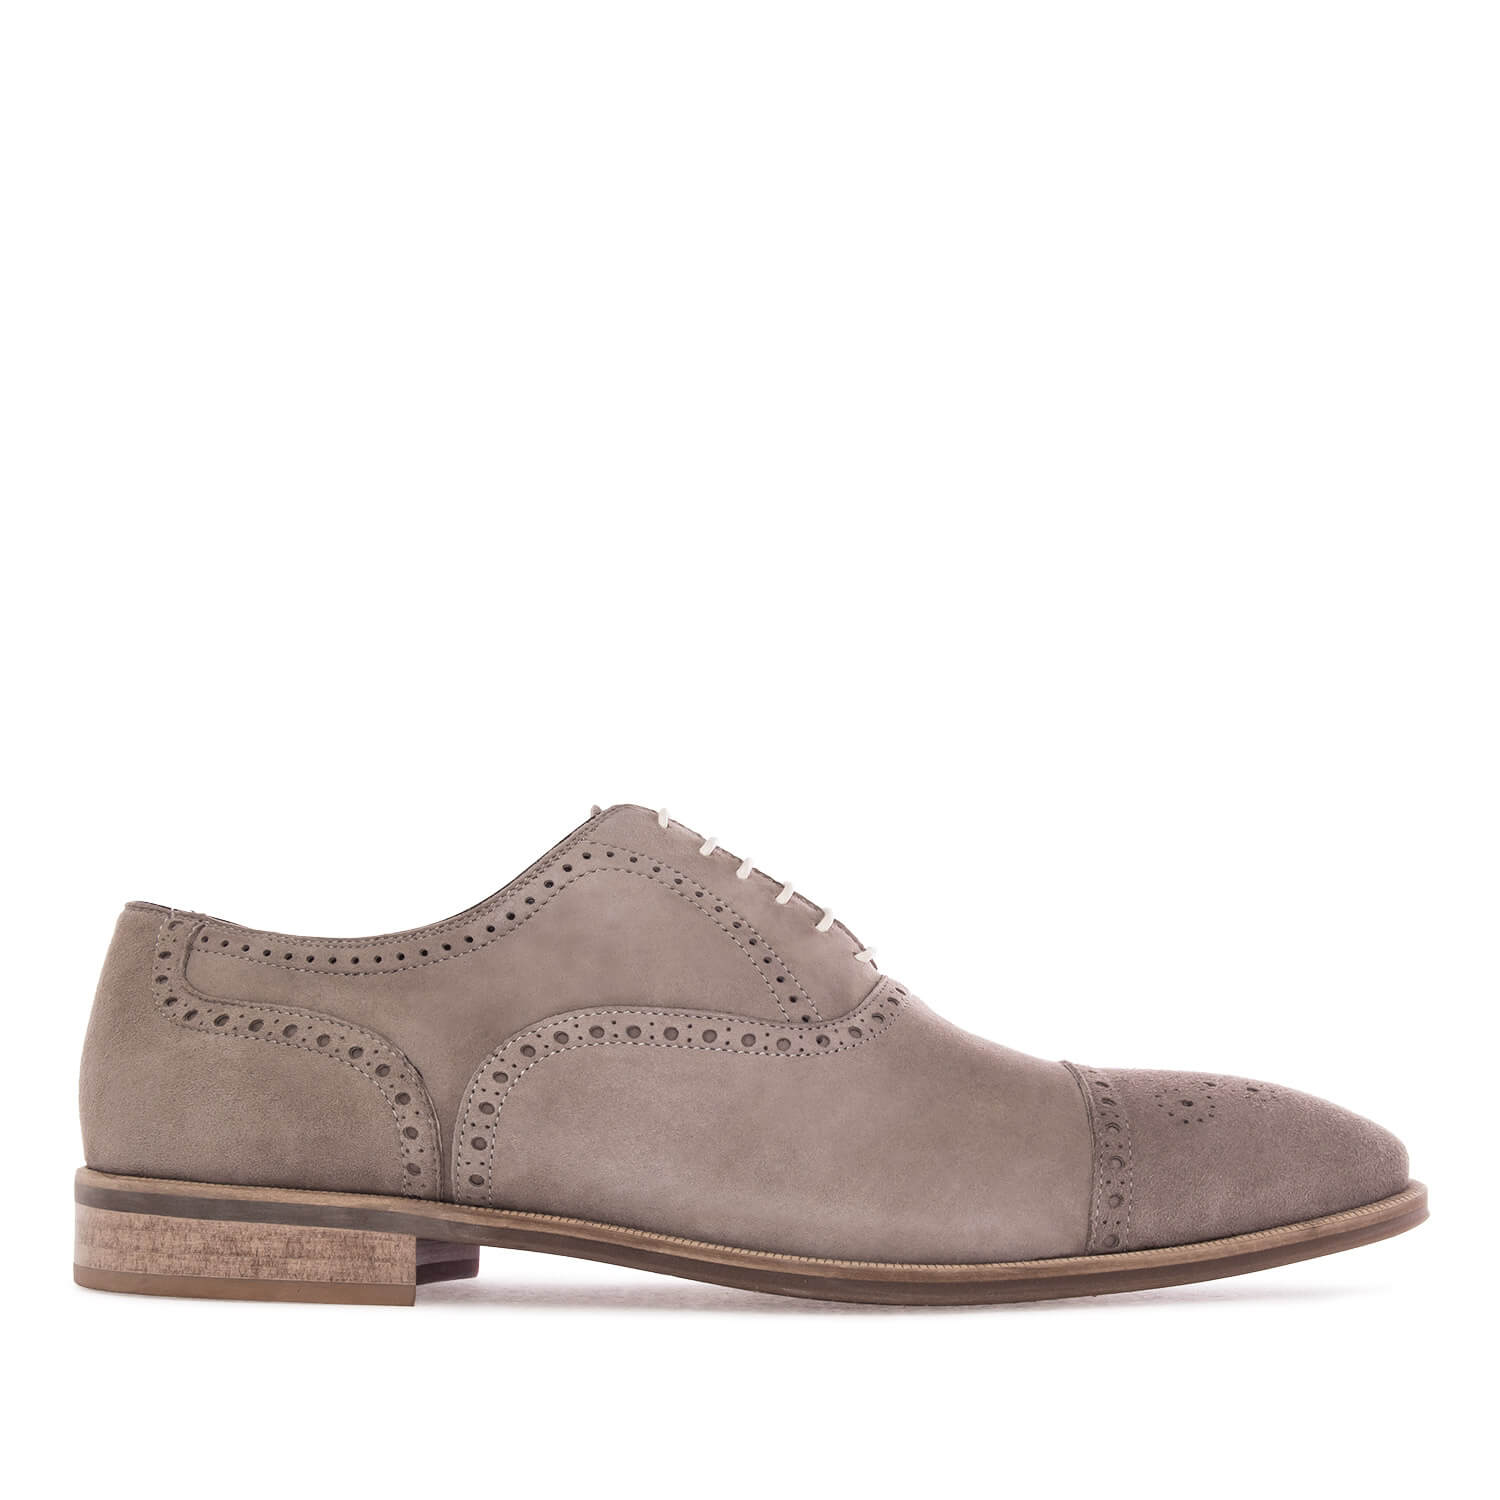 oxford shoes in grey split leather large sizes